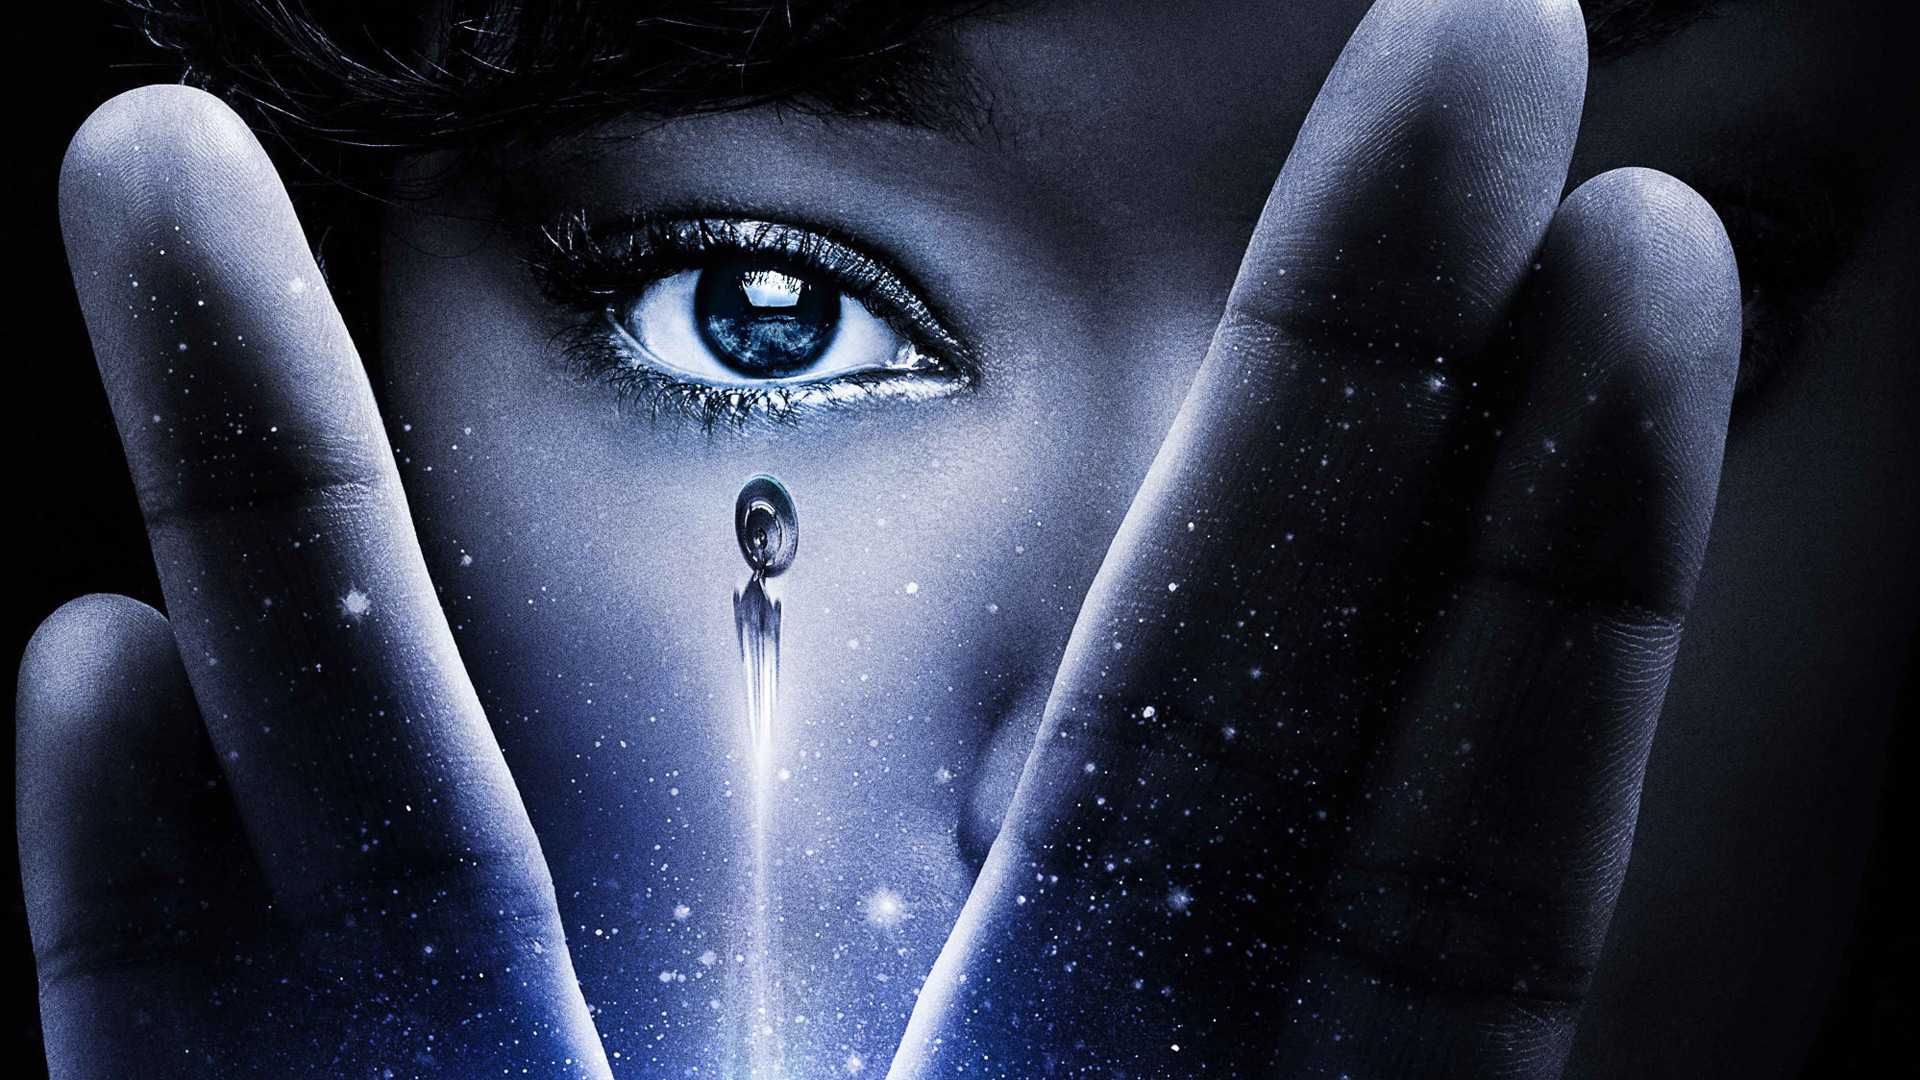 Star Trek: Discovery season 1 episode 8 watch online